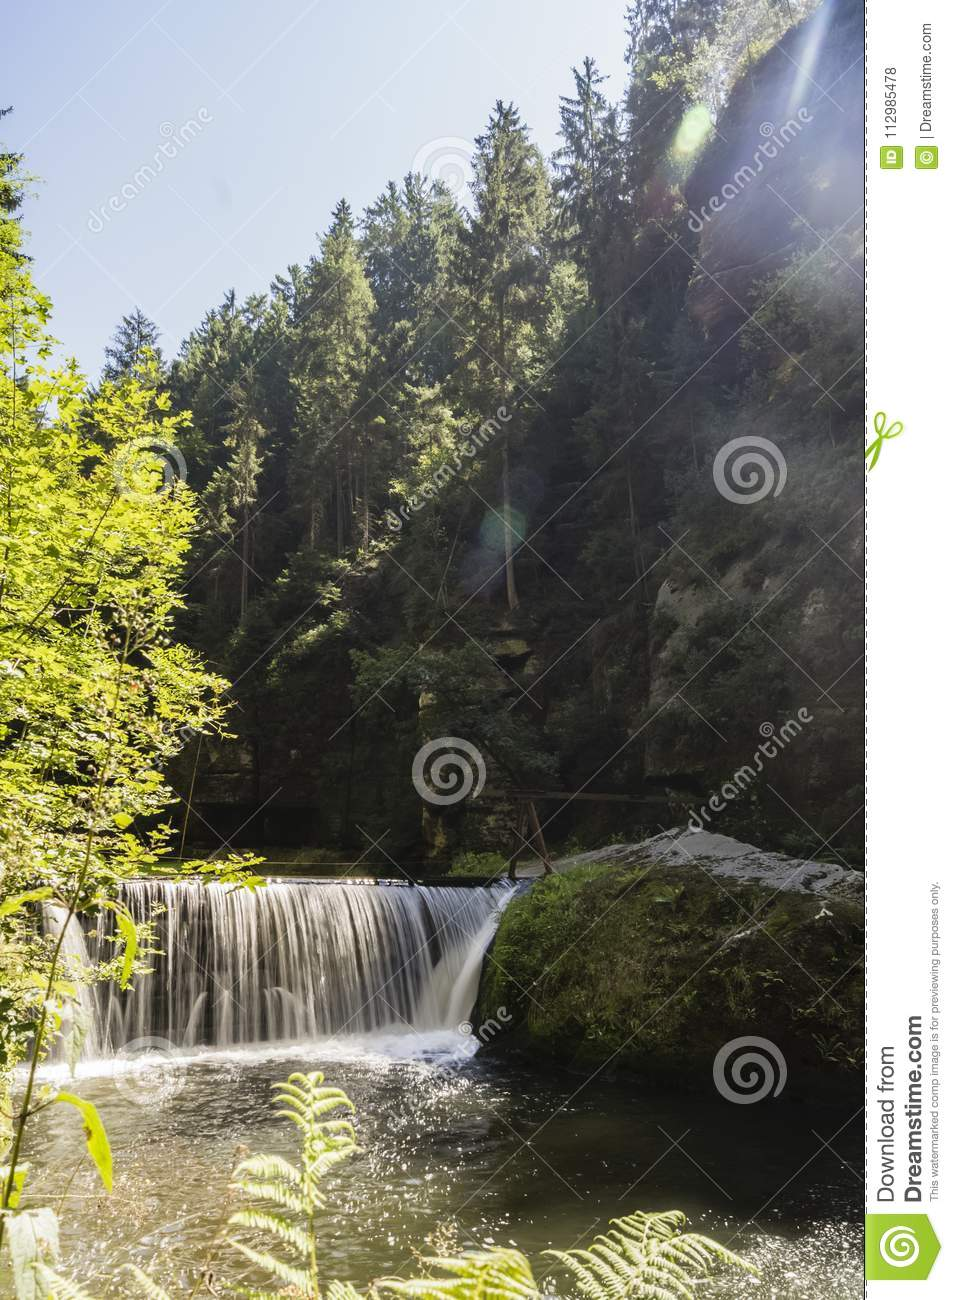 Waterfall in the sun